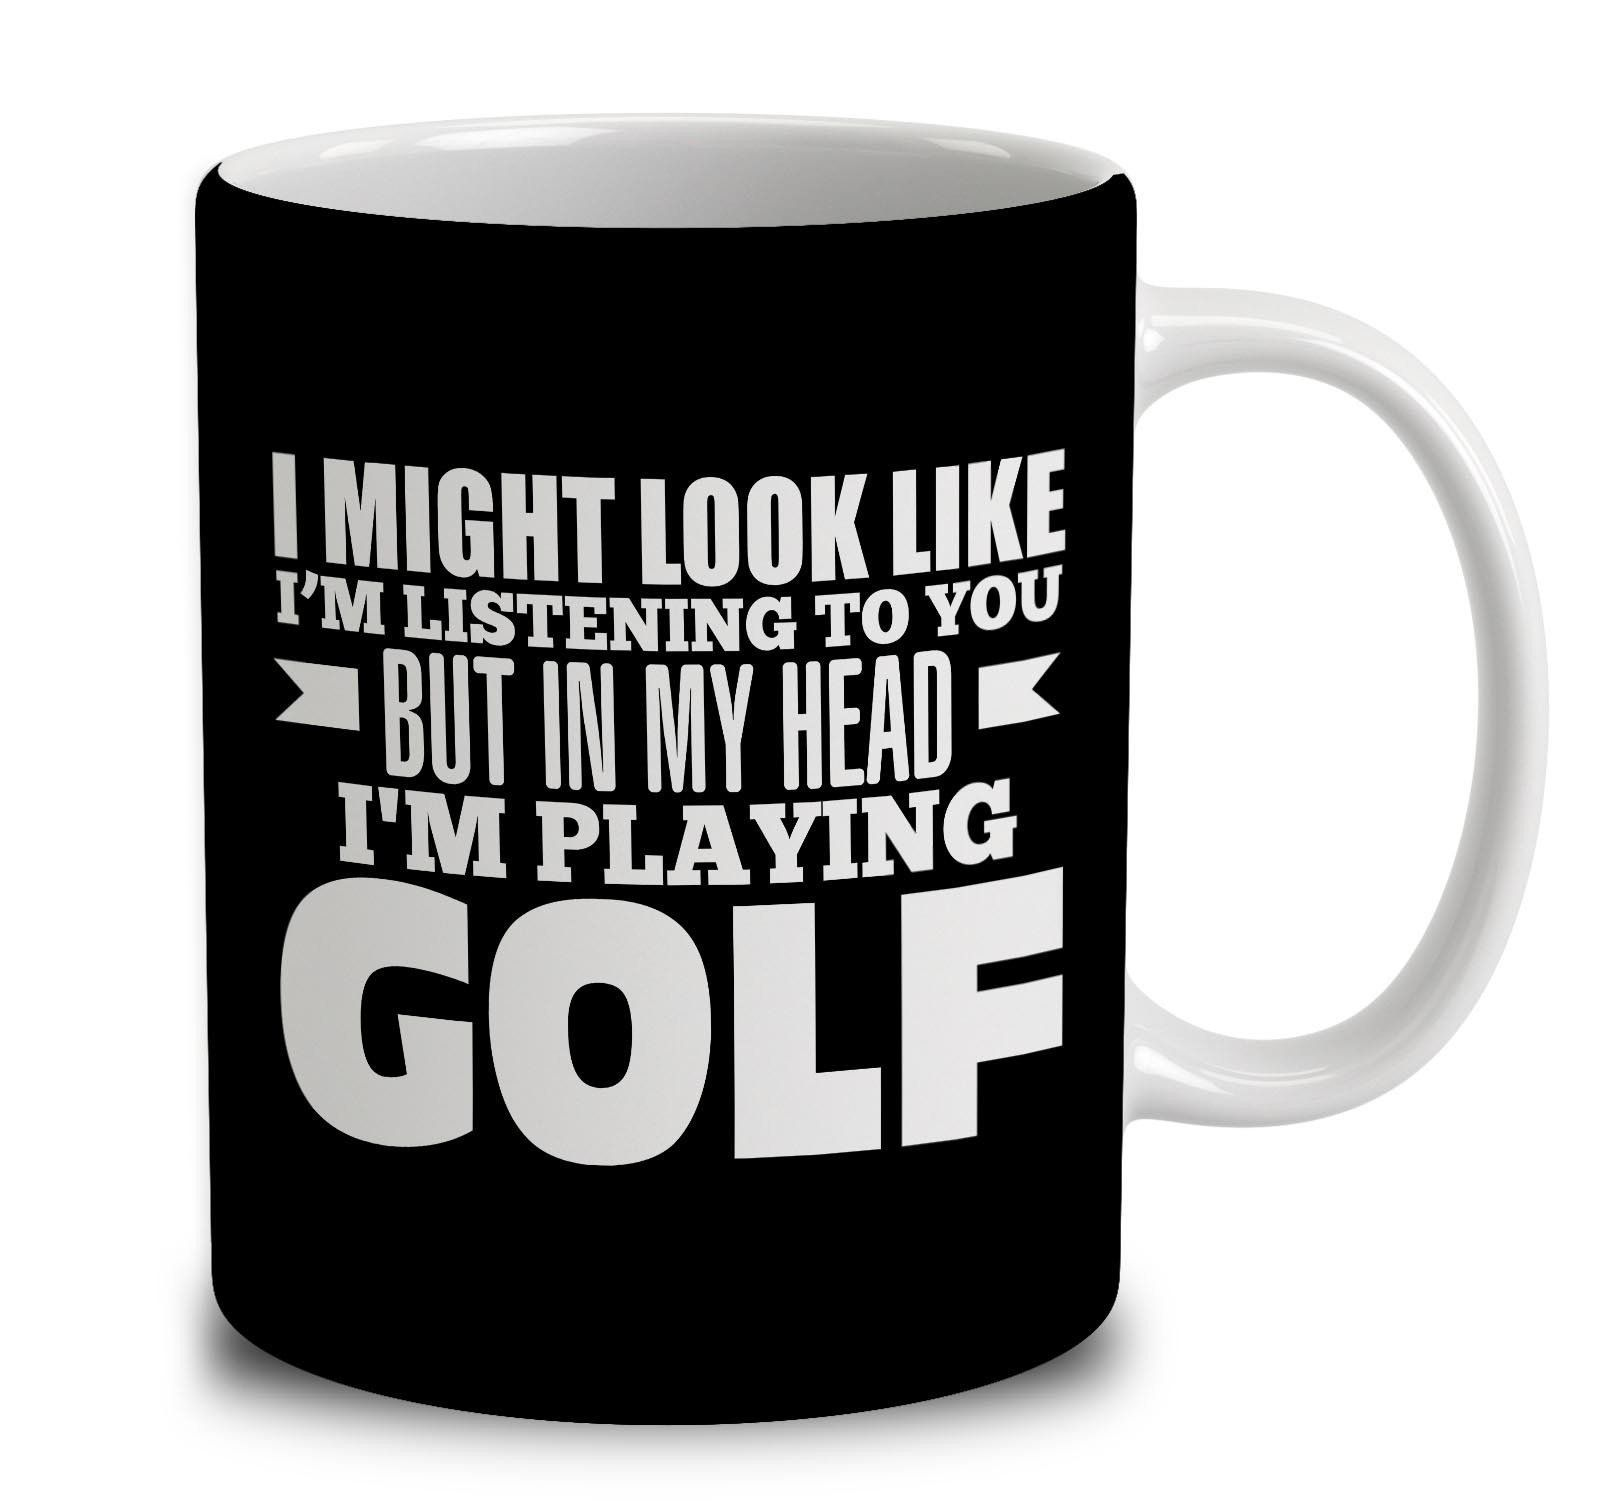 In my head im playing golf play golf how to do yoga